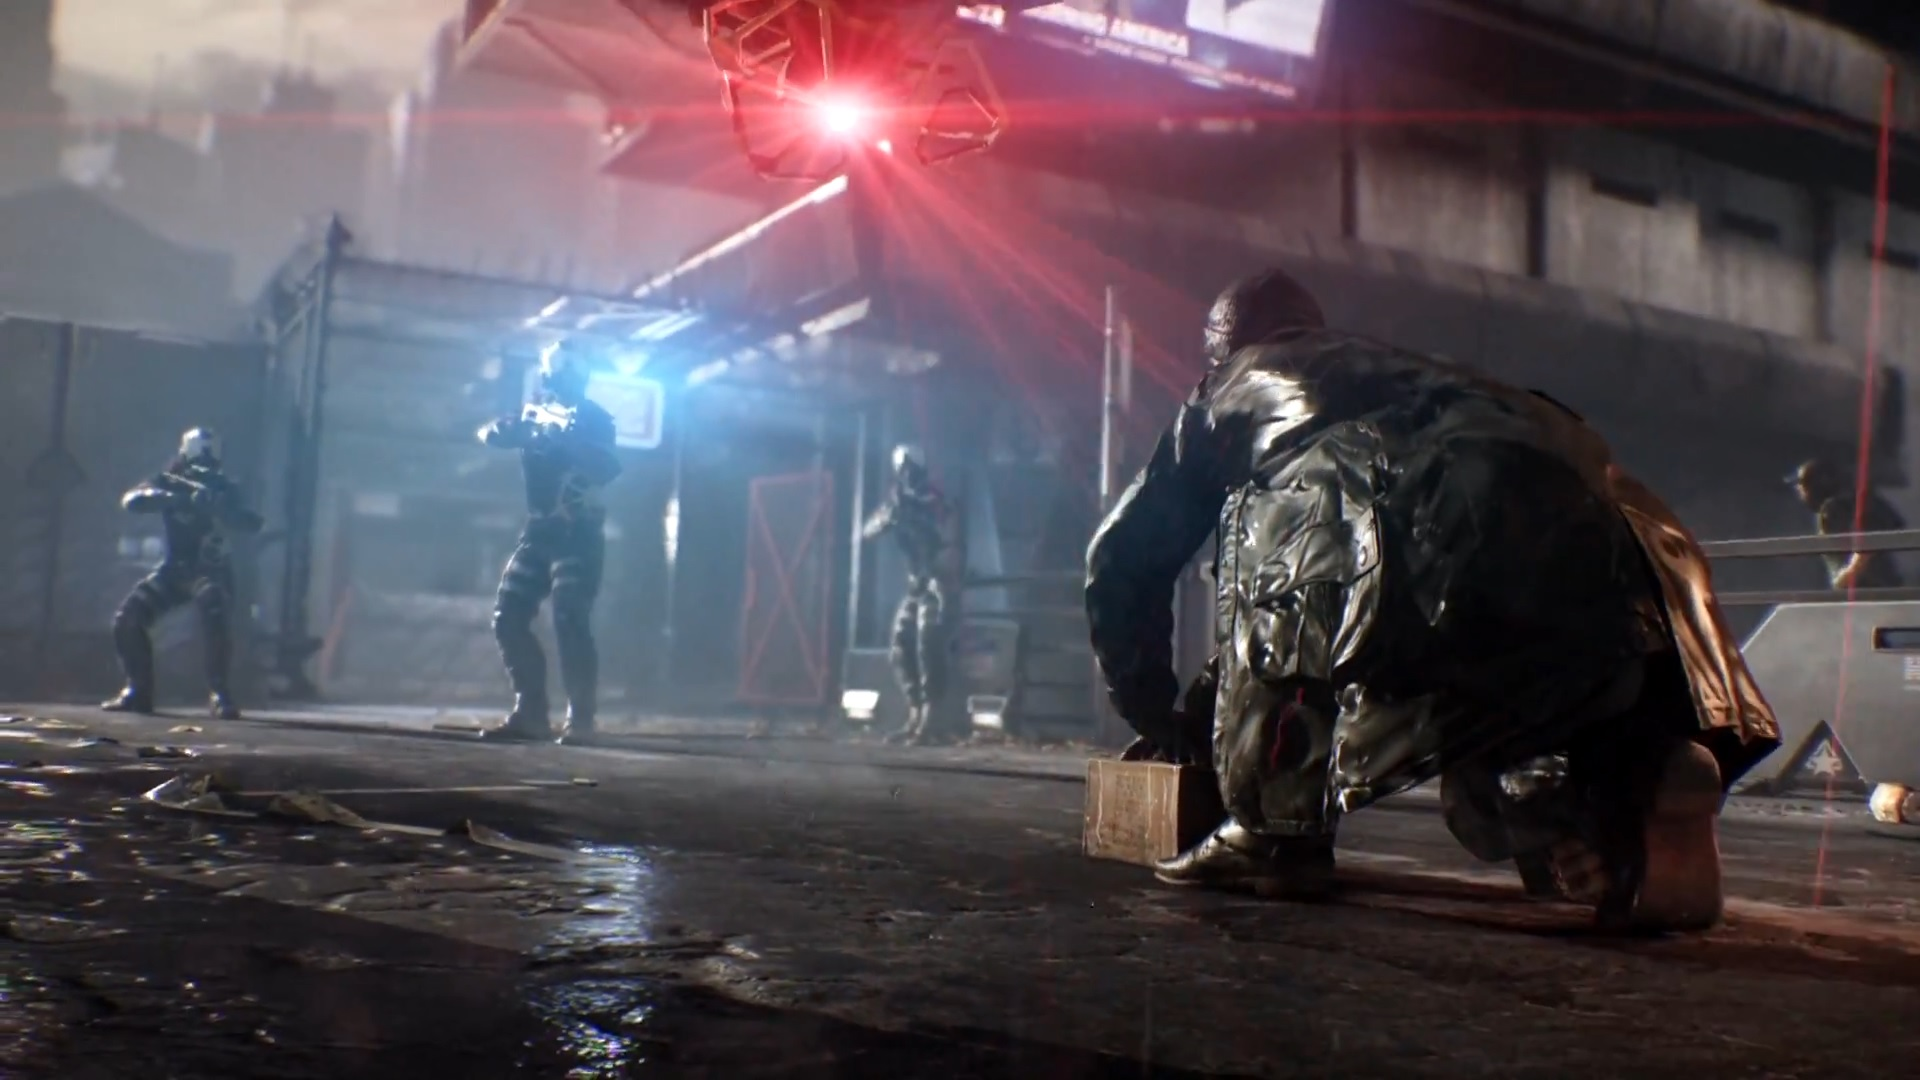 Download Wallpaper  Homefront the revolution, Homefront  1920x1080